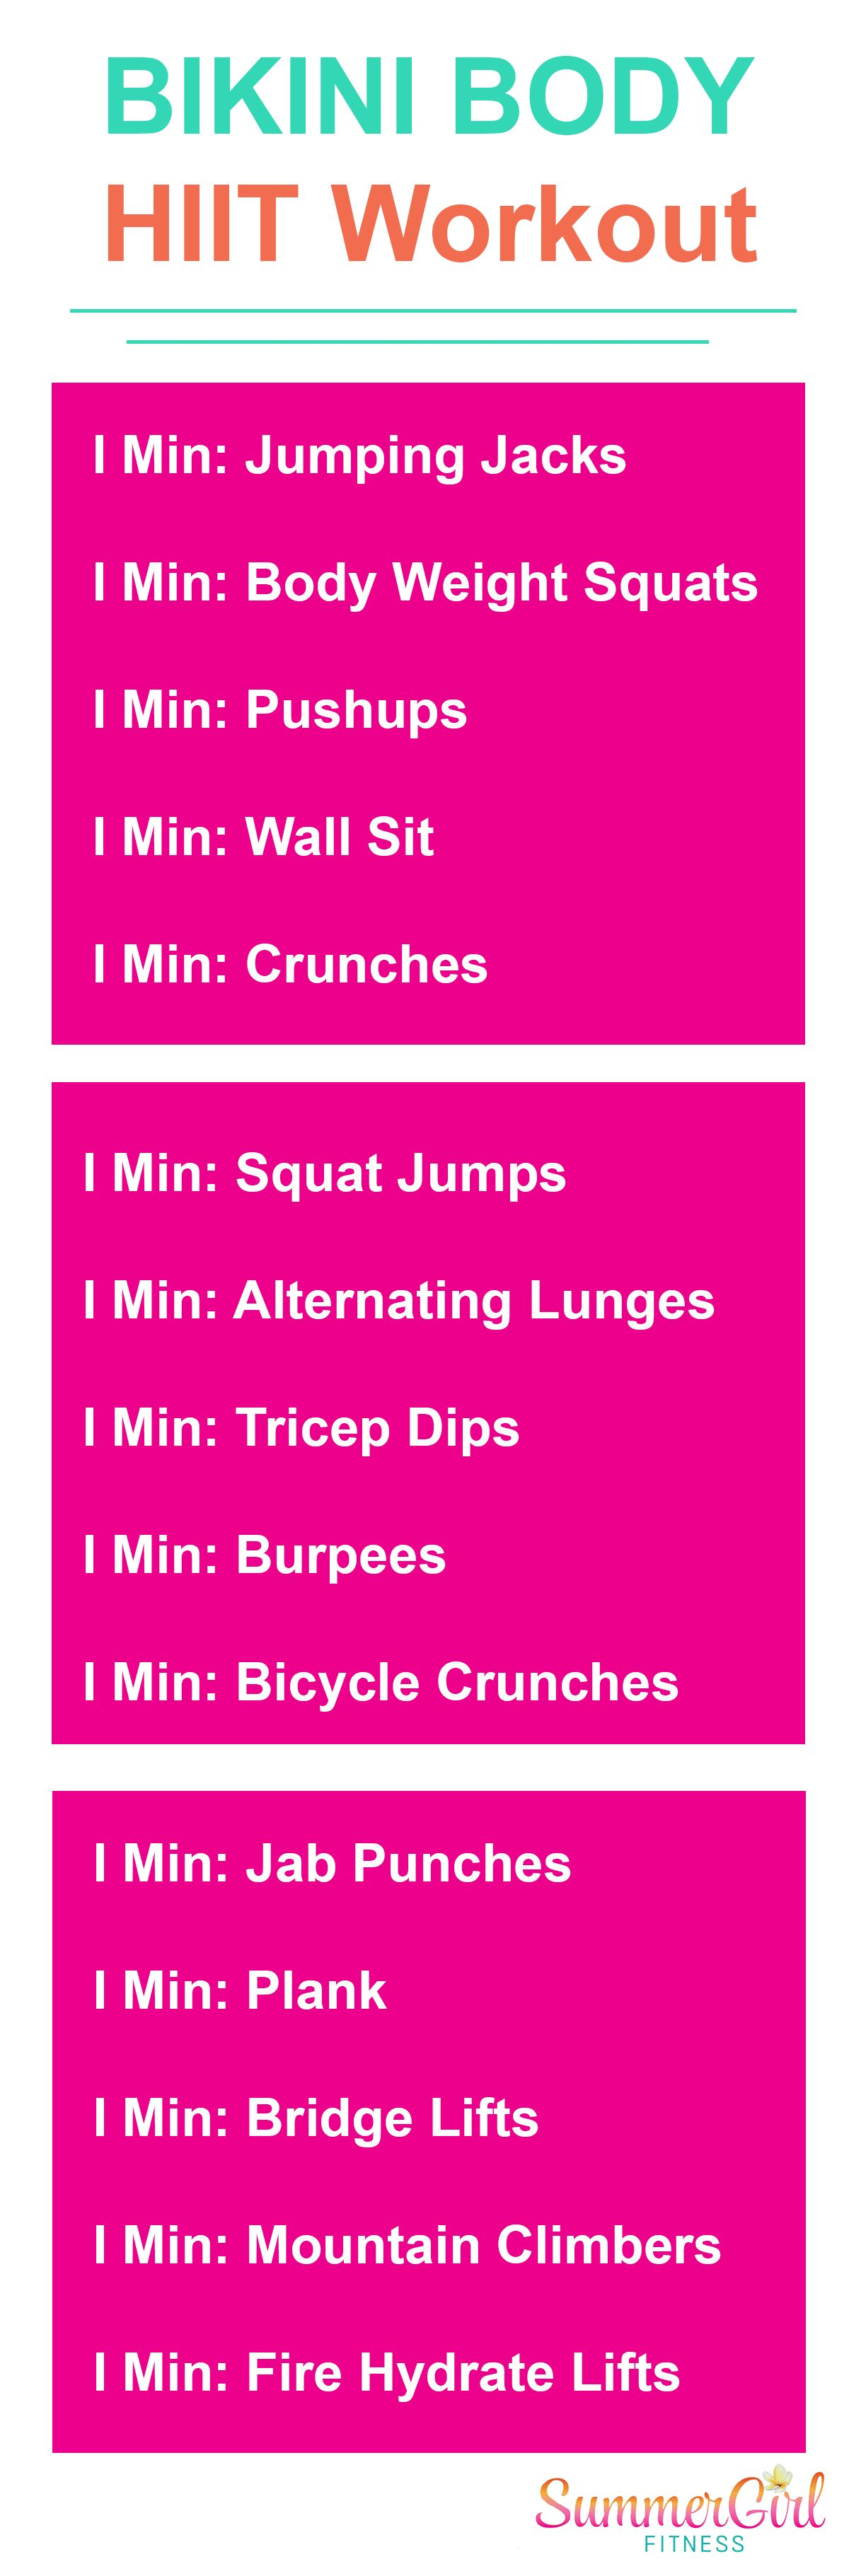 photo relating to Printable Hiit Workouts identify Bikini Physique Property HIIT Work out: #SummerGirlFitness - even further